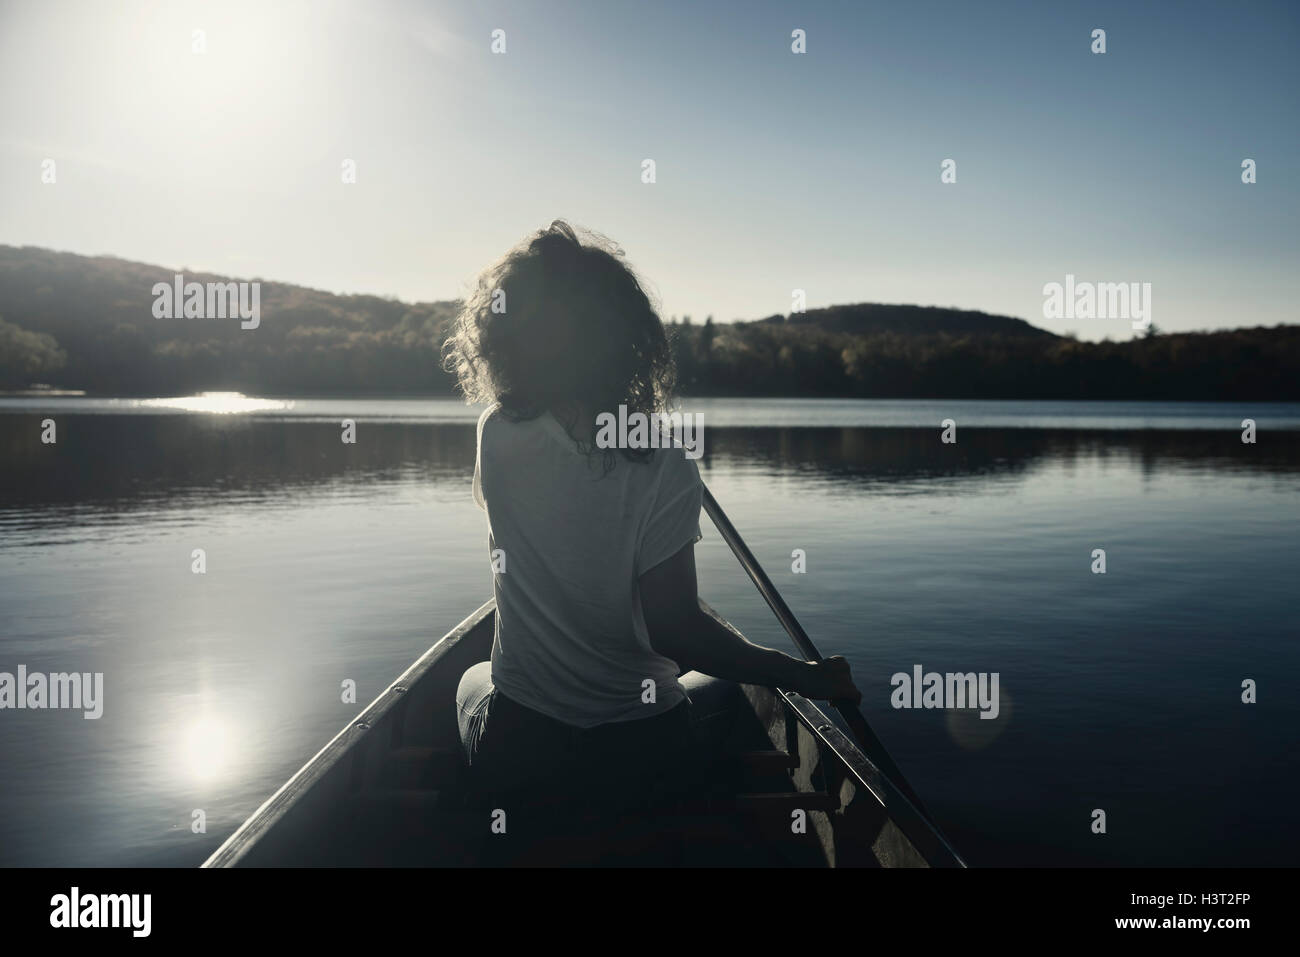 Young woman canoeing on a lake in fall. Muskoka, Ontario, Canada. - Stock Image